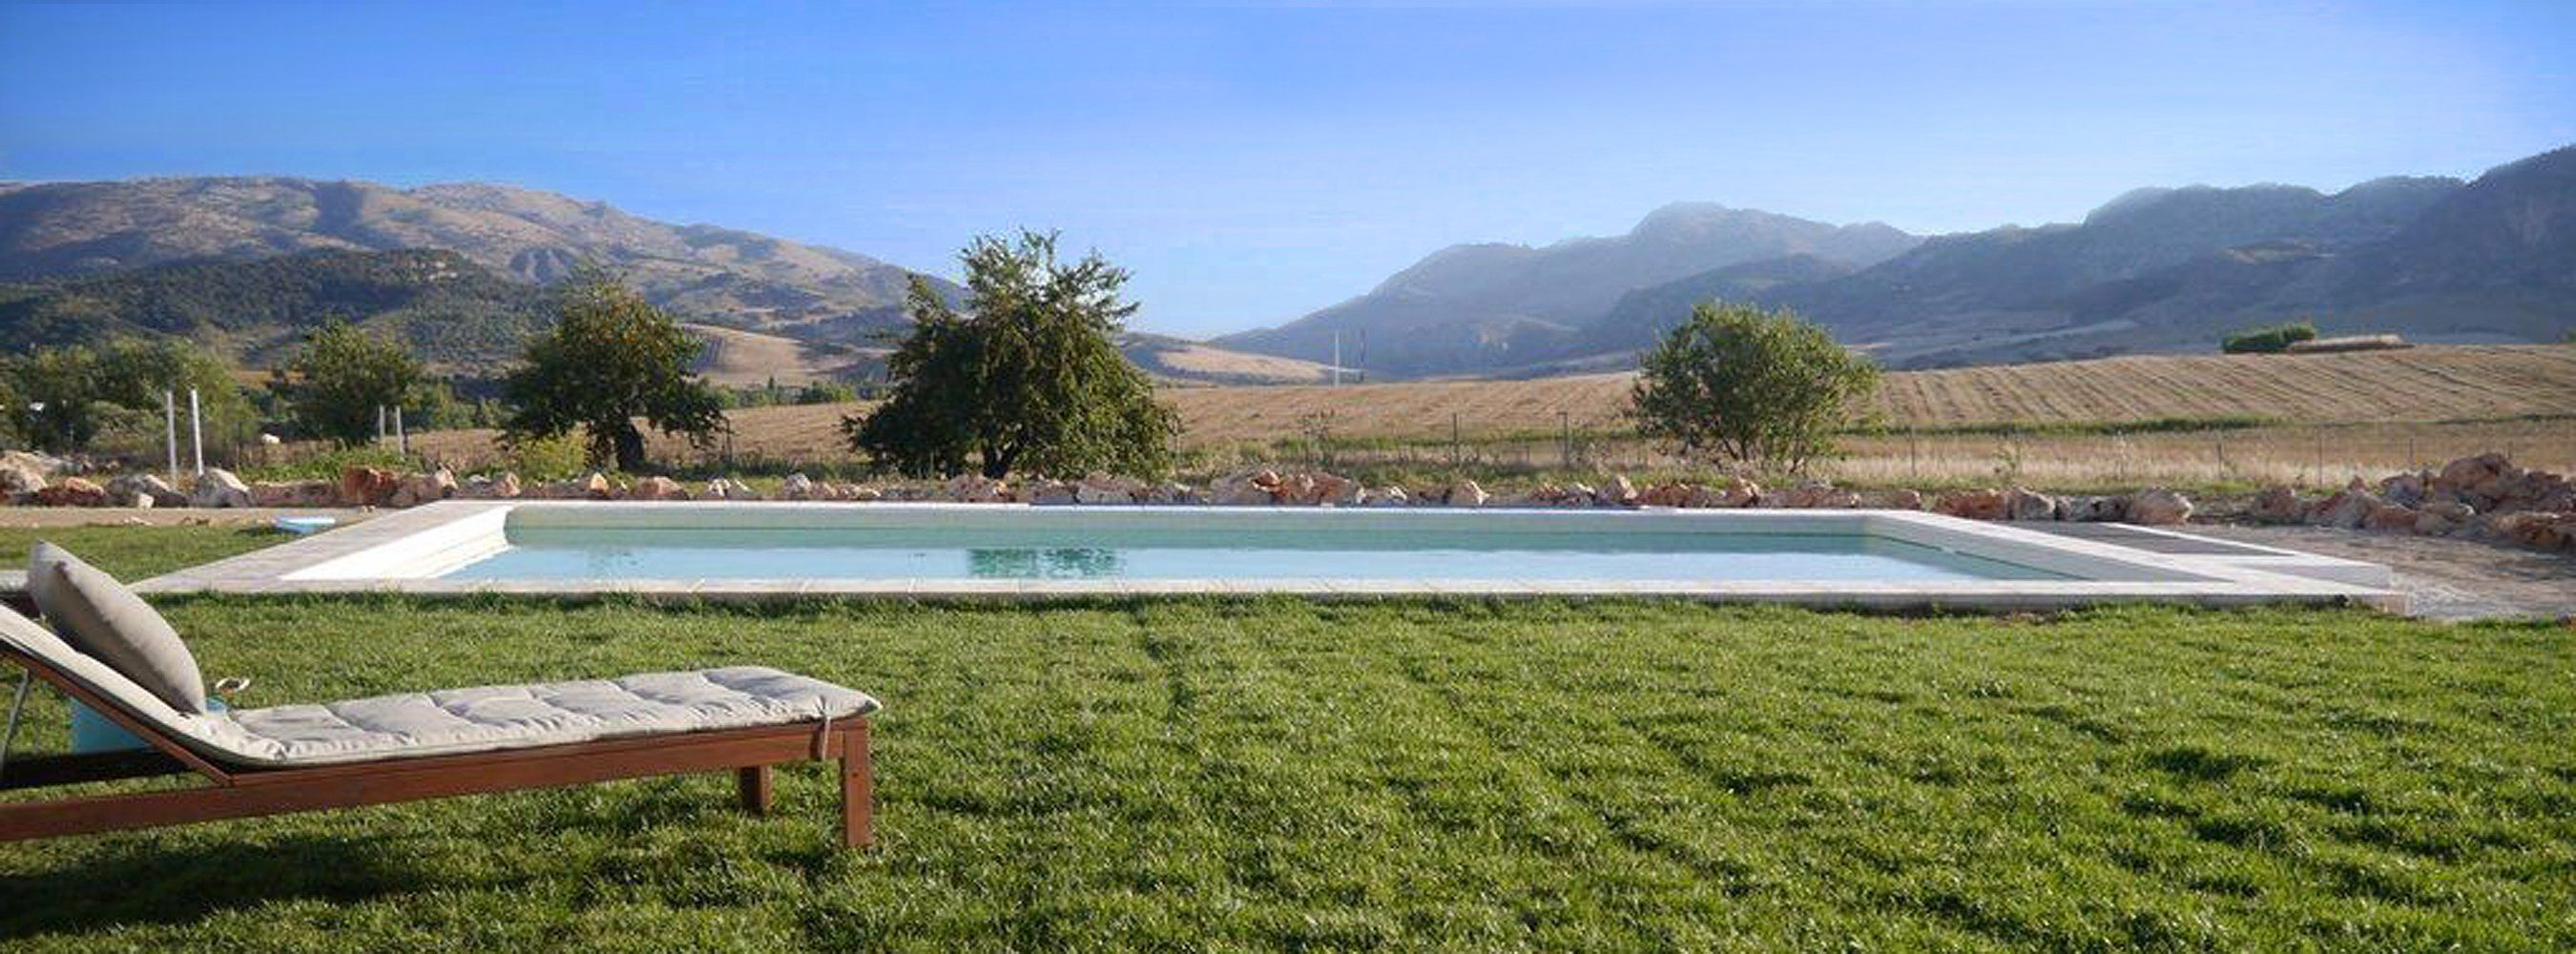 pool and view andalucia